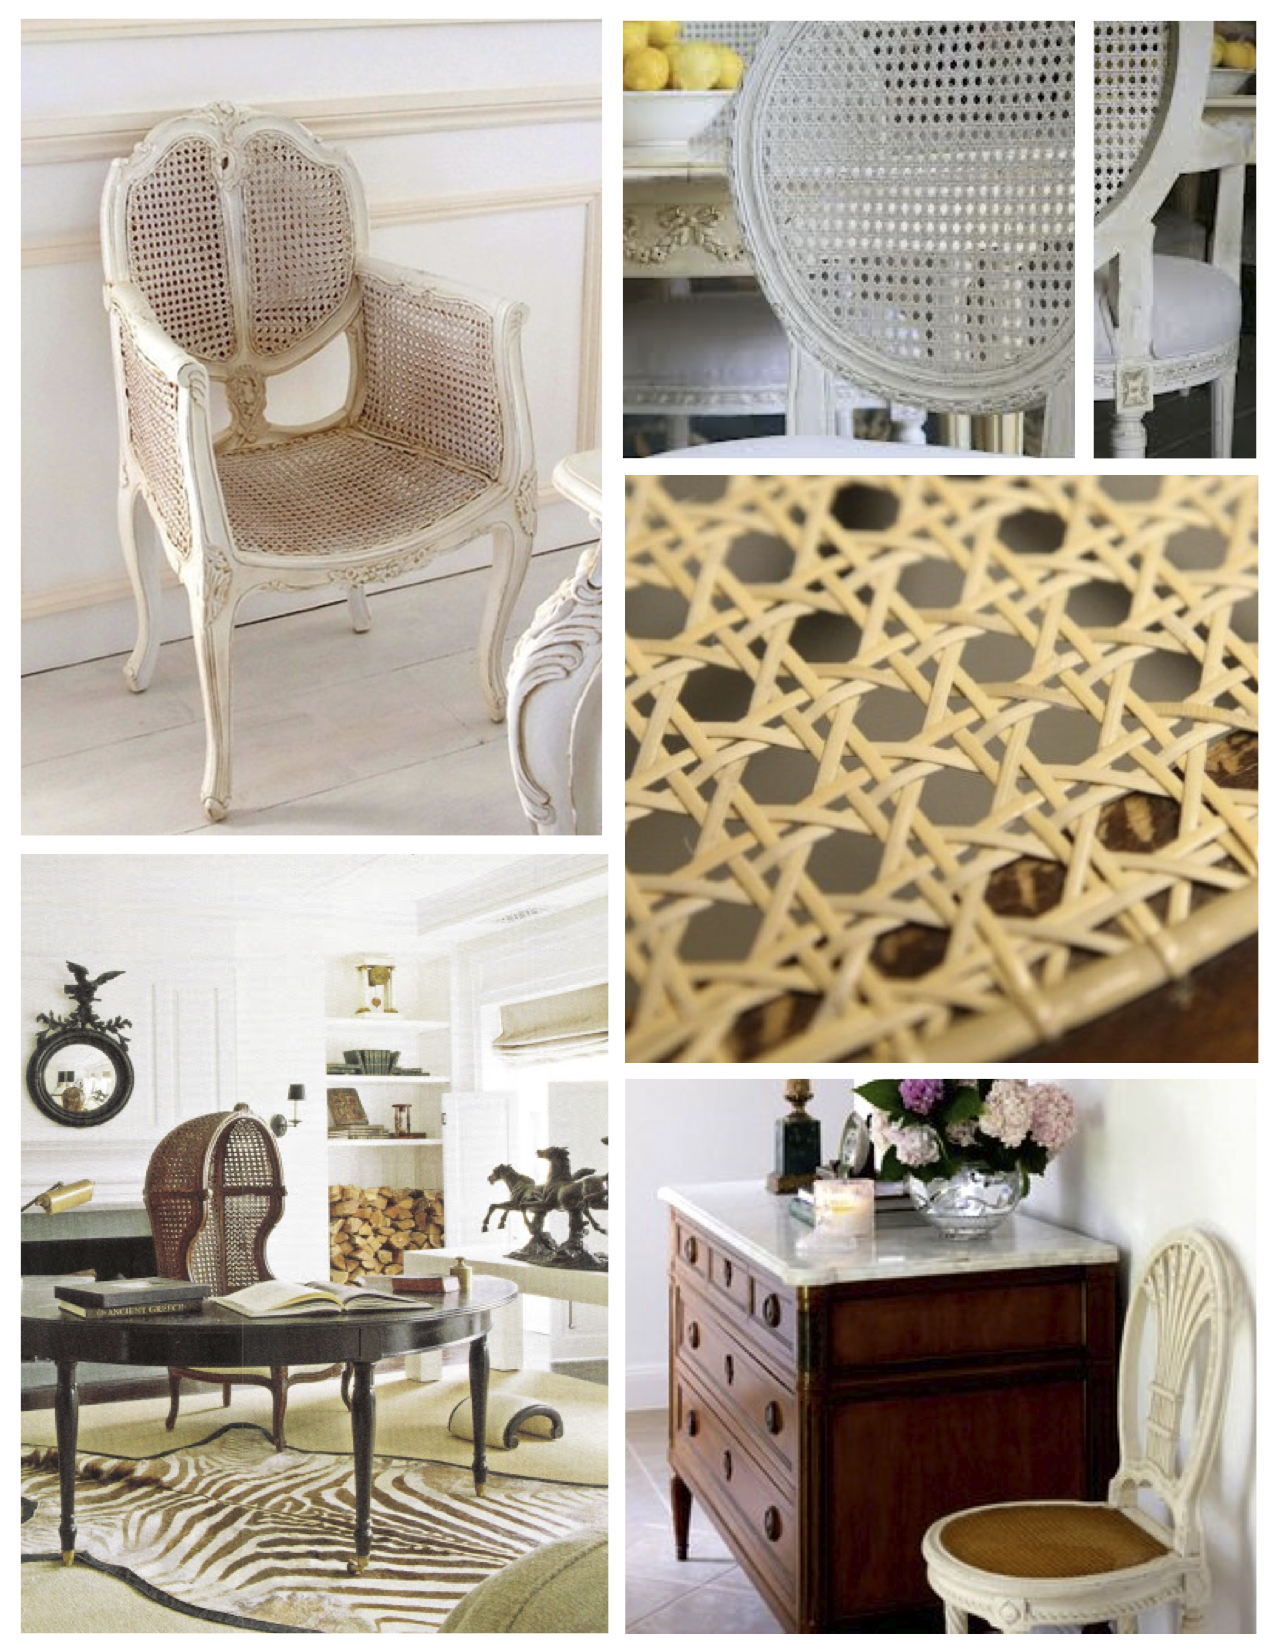 ... Distinctive Patterns Entwined With Artistry: The Caned Chair